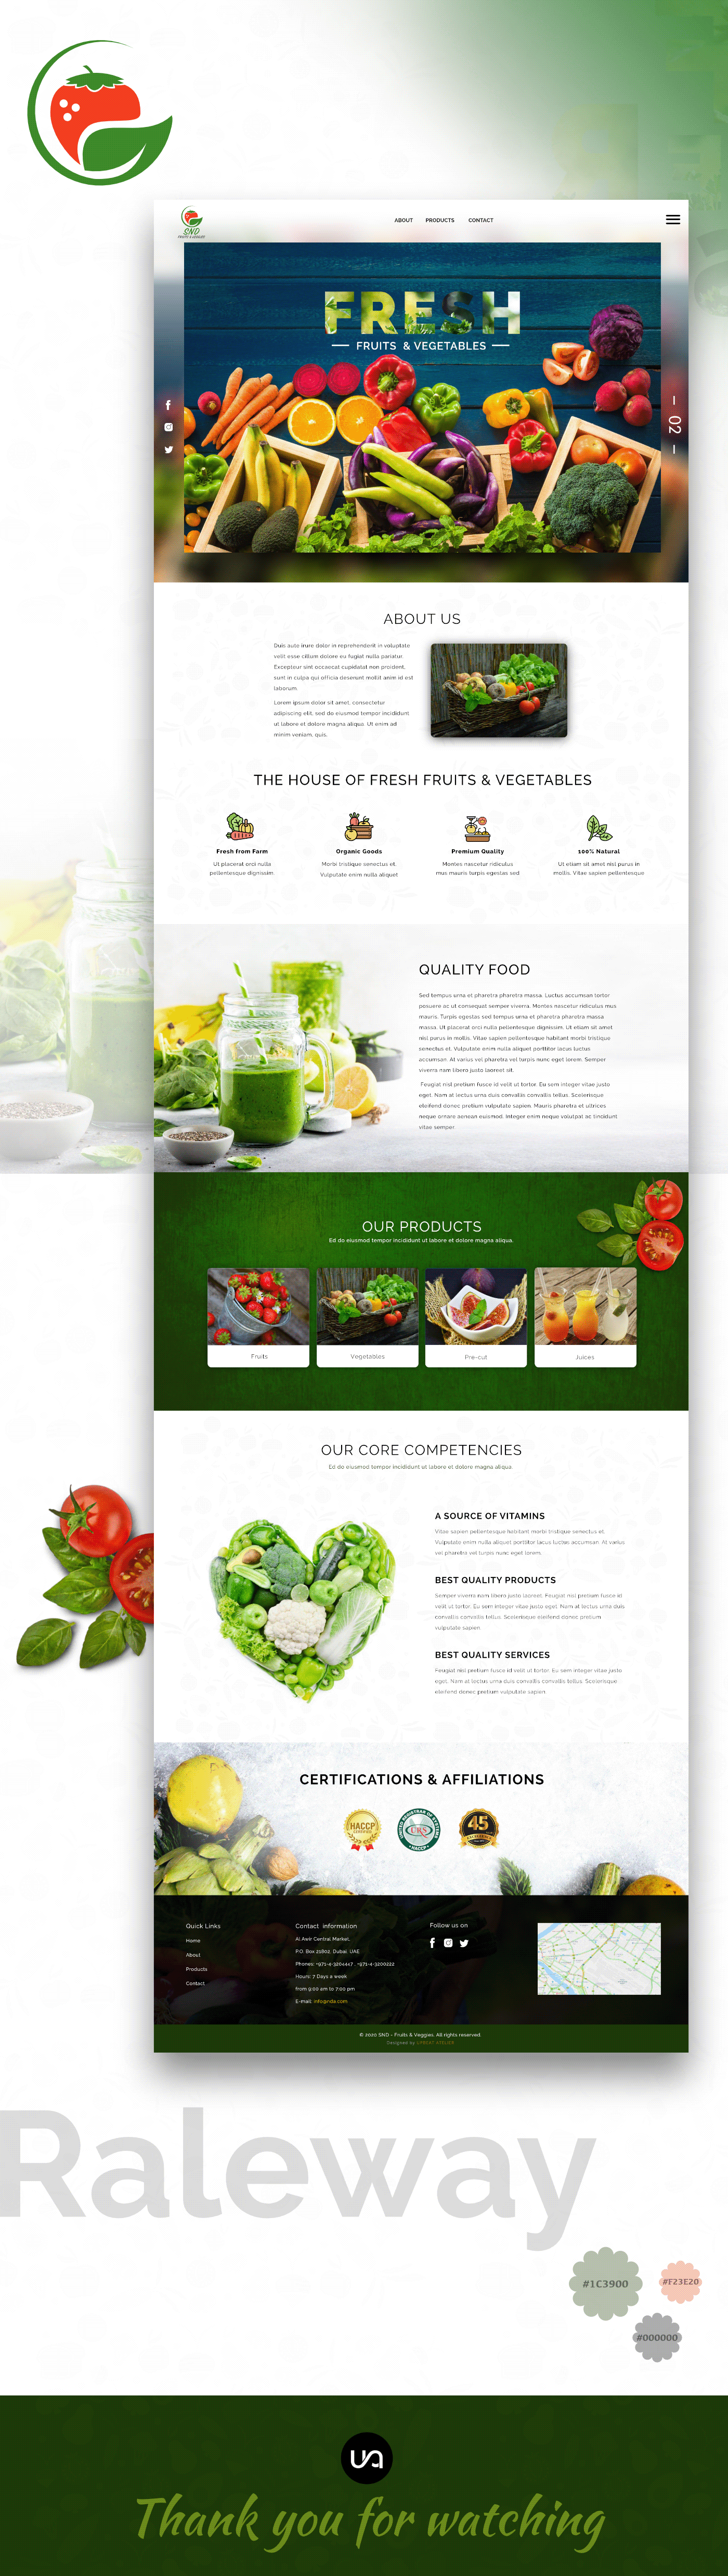 app design Fruits and Veggies home page landing page template ui design Website